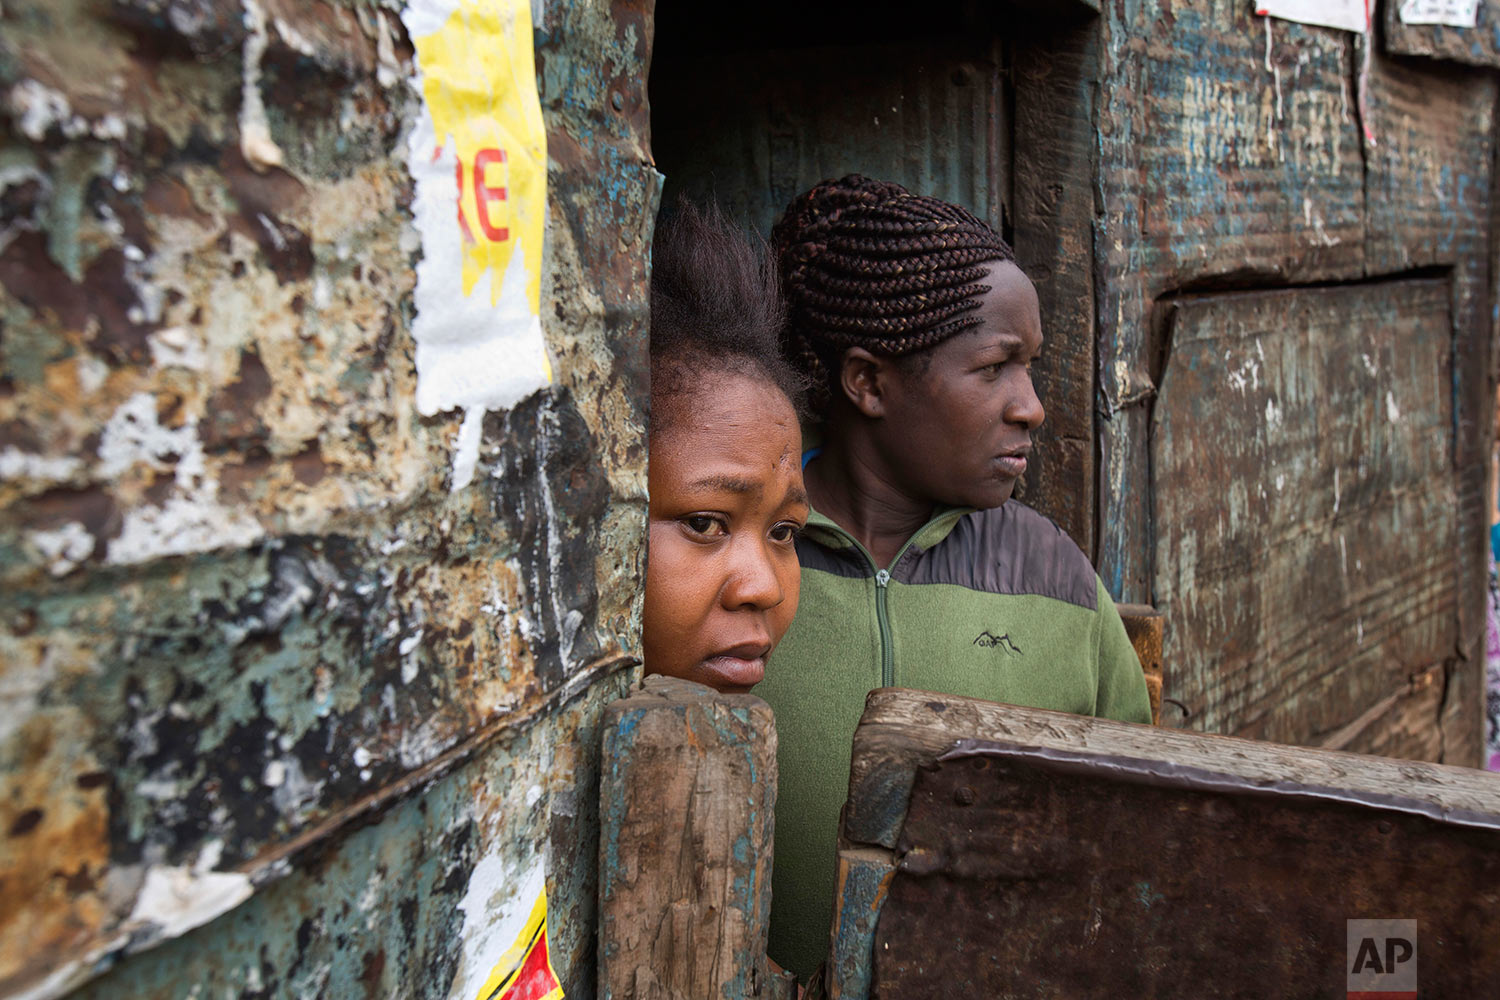 Residents watch Kenyan security forces chase supporters of Kenyan opposition leader and presidential candidate Raila Odinga who demonstrated in the Mathare area of Nairobi, Wednesday, Aug. 9, 2017. Odinga alleges that hackers manipulated the Tuesday election results which appear to show President Uhuru Kenyatta has a wide lead over Odinga. (AP Photo/Jerome Delay)